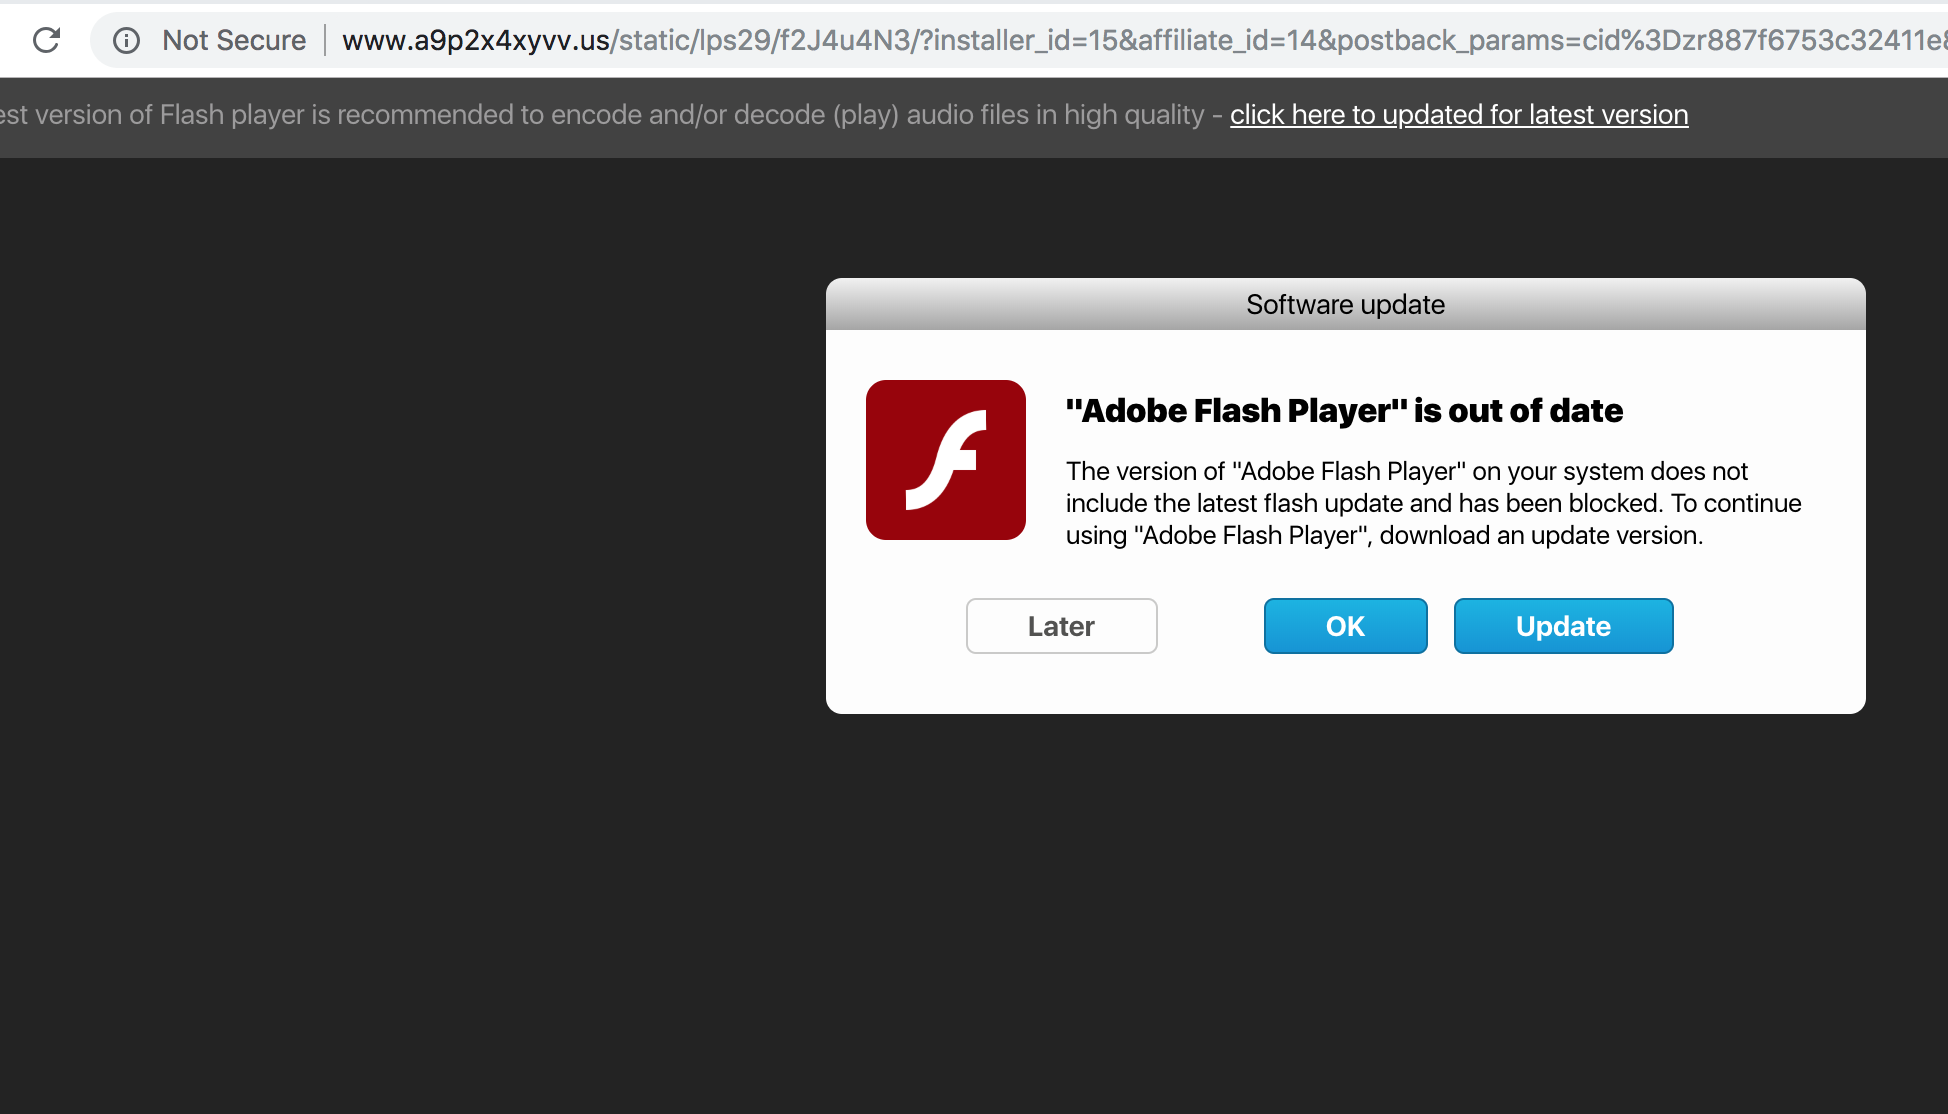 A9p2x4xyvv.us fake Adobe Flash Player update alert